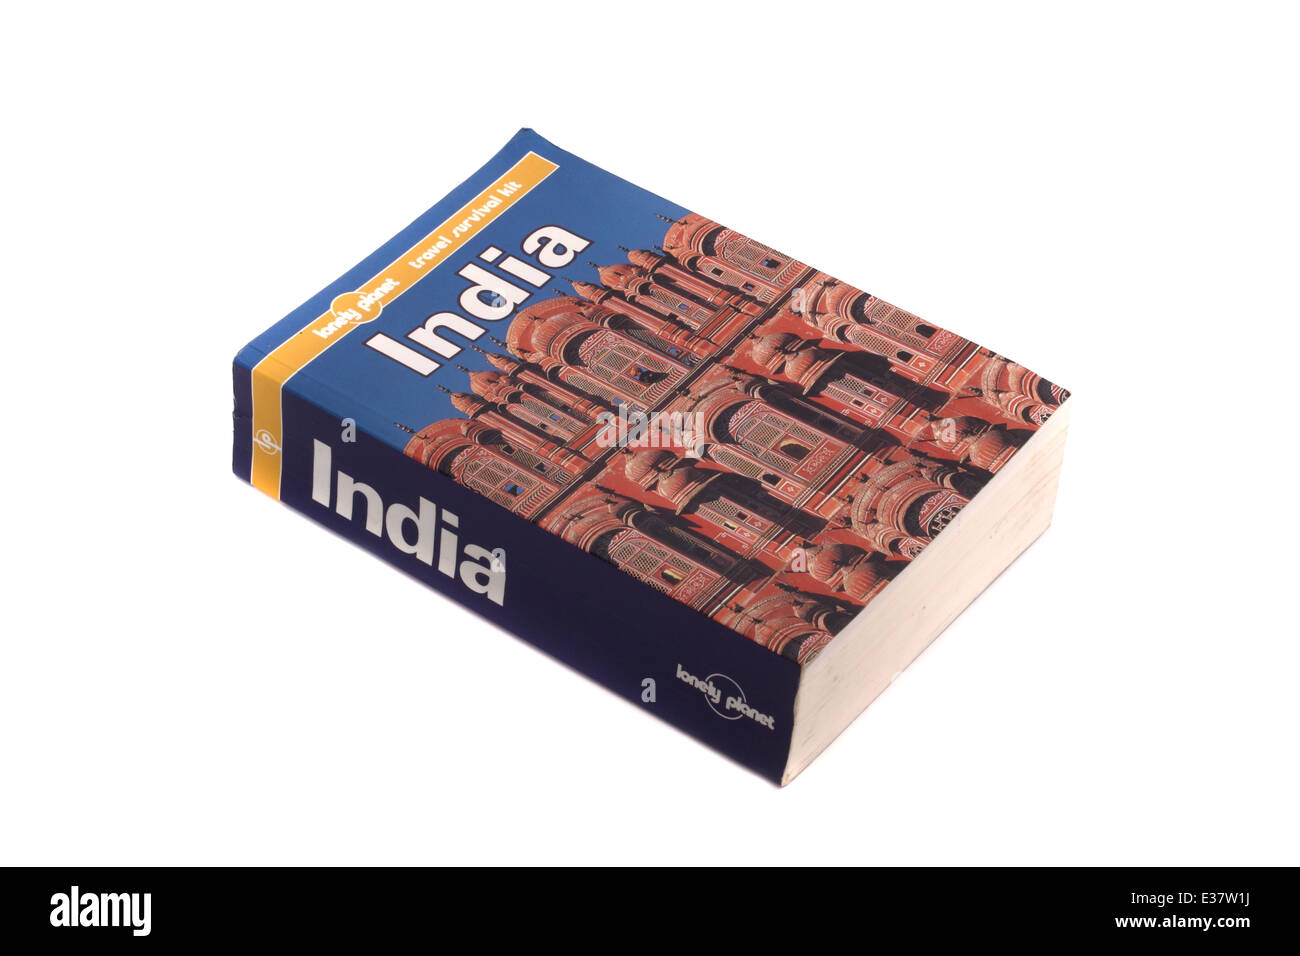 A Lonely Planet travel guide to India. - Stock Image